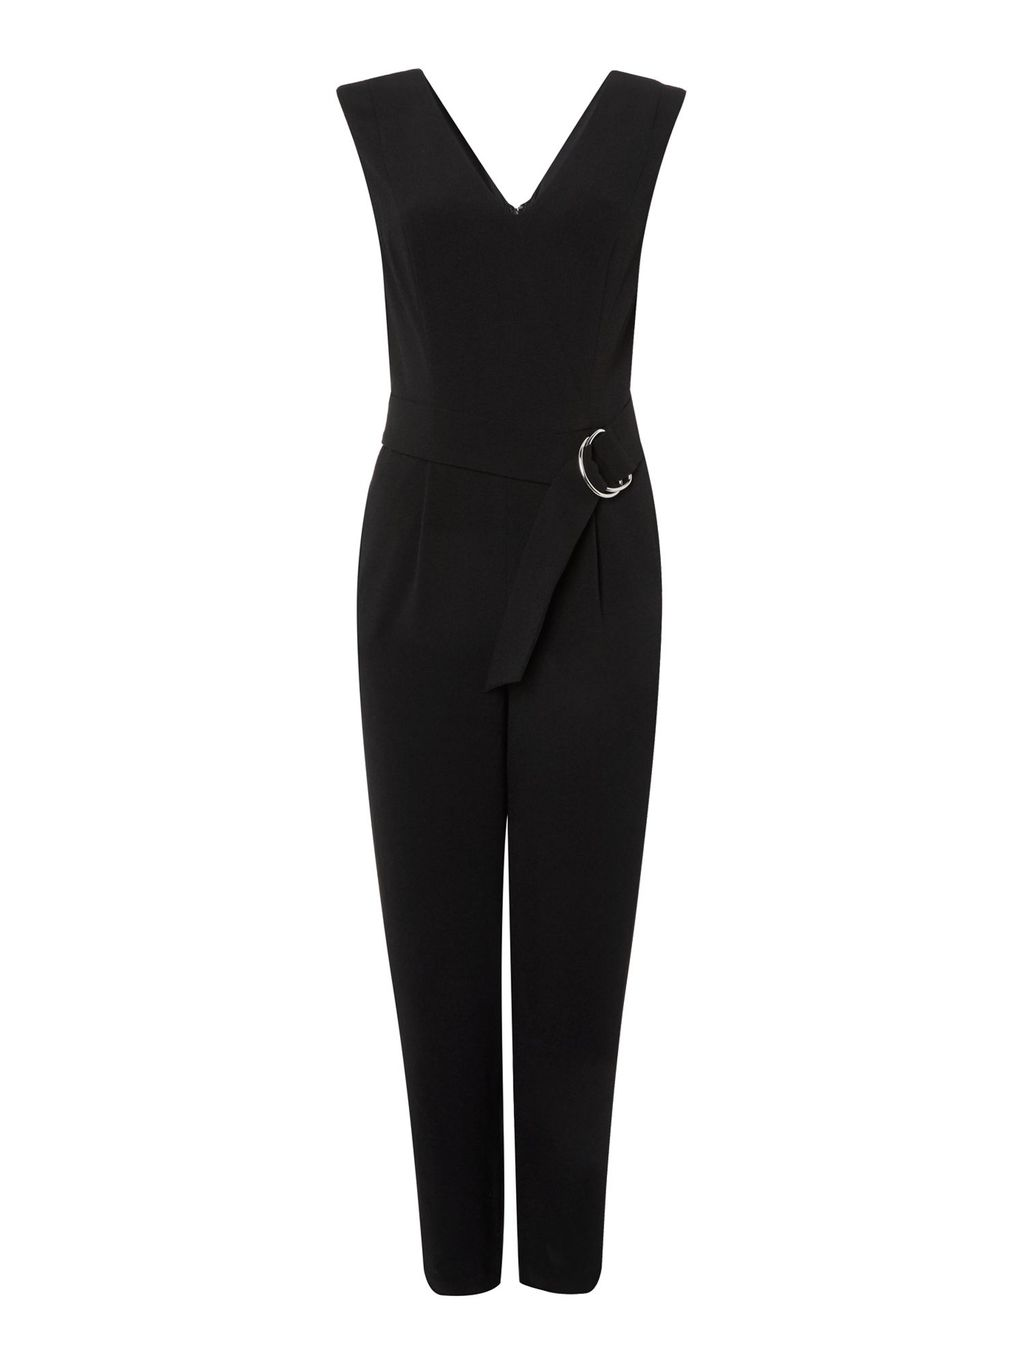 Sofia Jumpsuit, Black - length: standard; neckline: v-neck; pattern: plain; sleeve style: sleeveless; waist detail: belted waist/tie at waist/drawstring; predominant colour: black; occasions: evening; fit: body skimming; fibres: polyester/polyamide - stretch; sleeve length: sleeveless; style: jumpsuit; pattern type: fabric; texture group: jersey - stretchy/drapey; season: a/w 2016; wardrobe: event